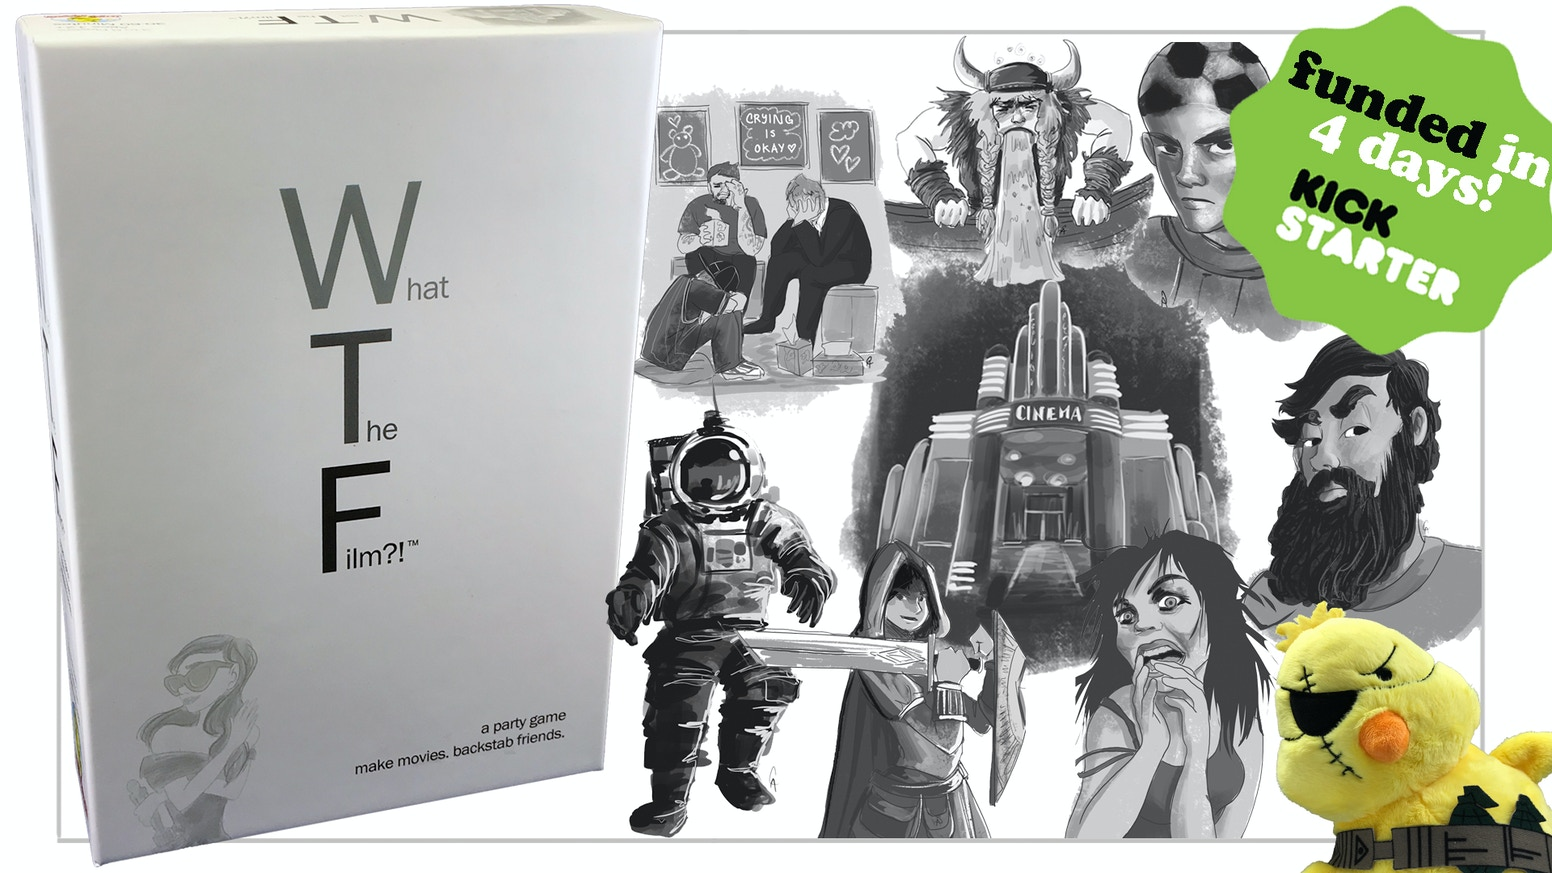 A party game about making movies, destroying friendships and a Russian DMV...WTF?! available exclusively at Target and Target.com